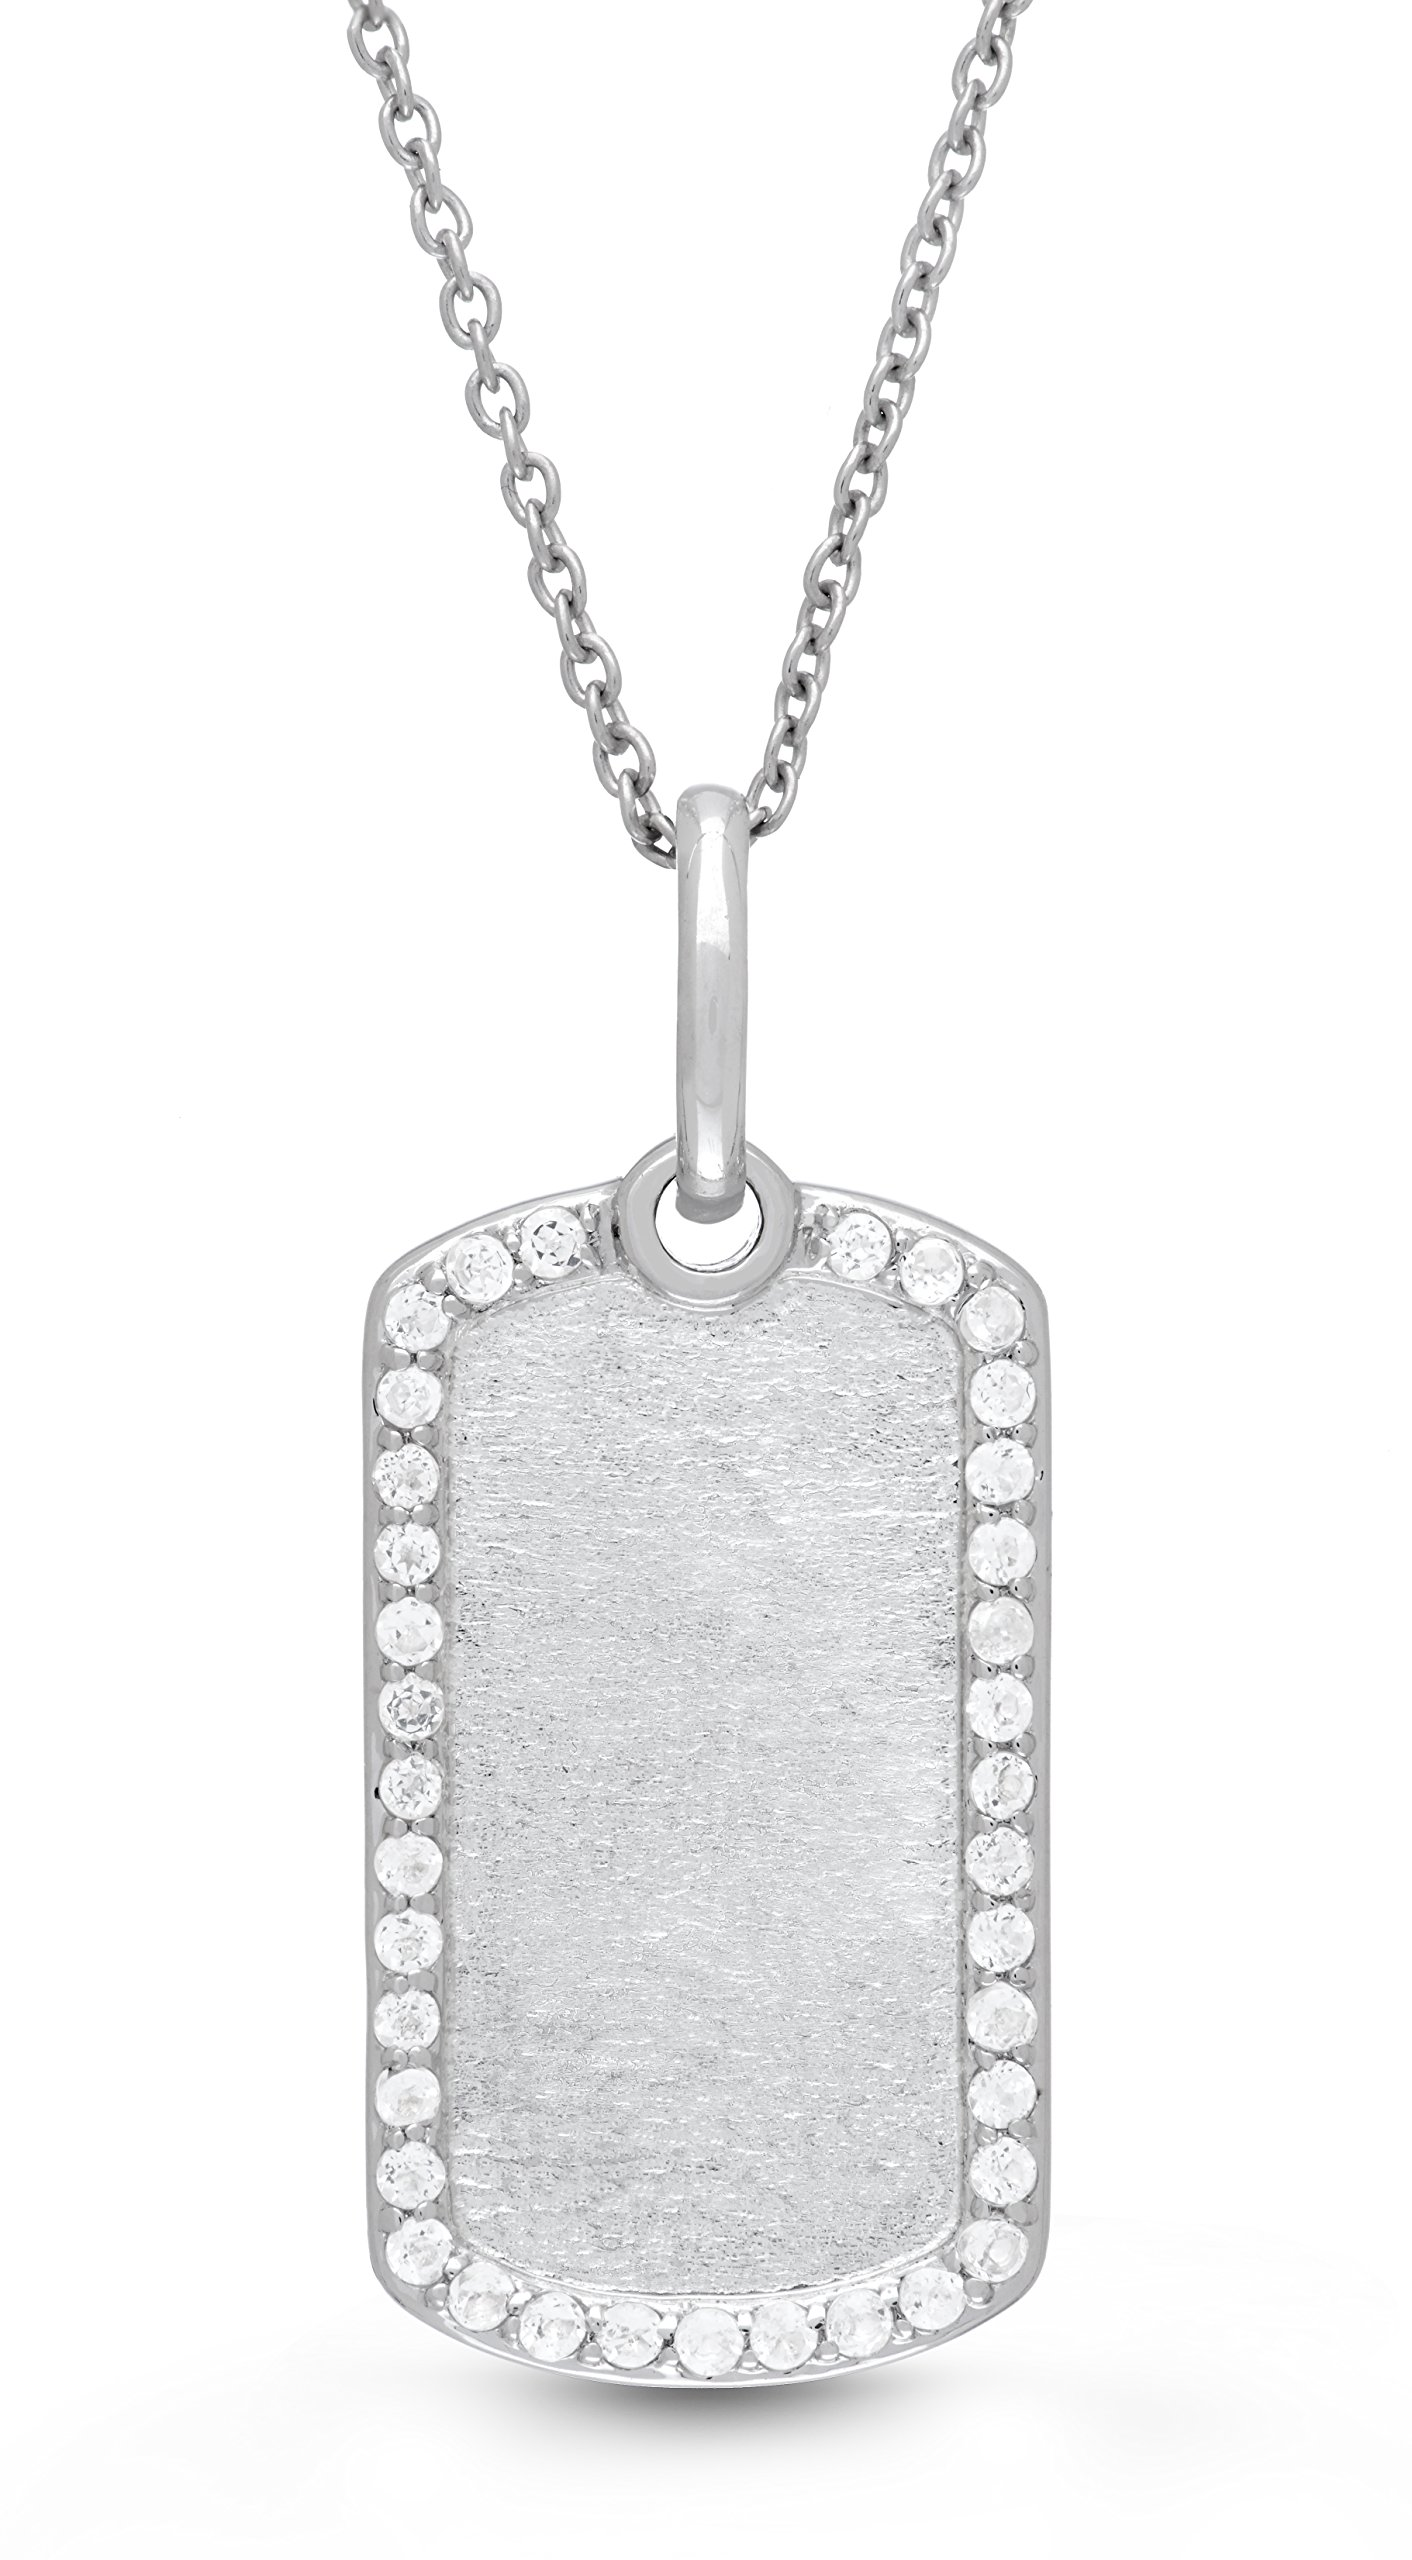 Sterling Silver-White Topaz-Custom Photo Locket Dog Tag -22-inch chain-The Meagan by With You Lockets